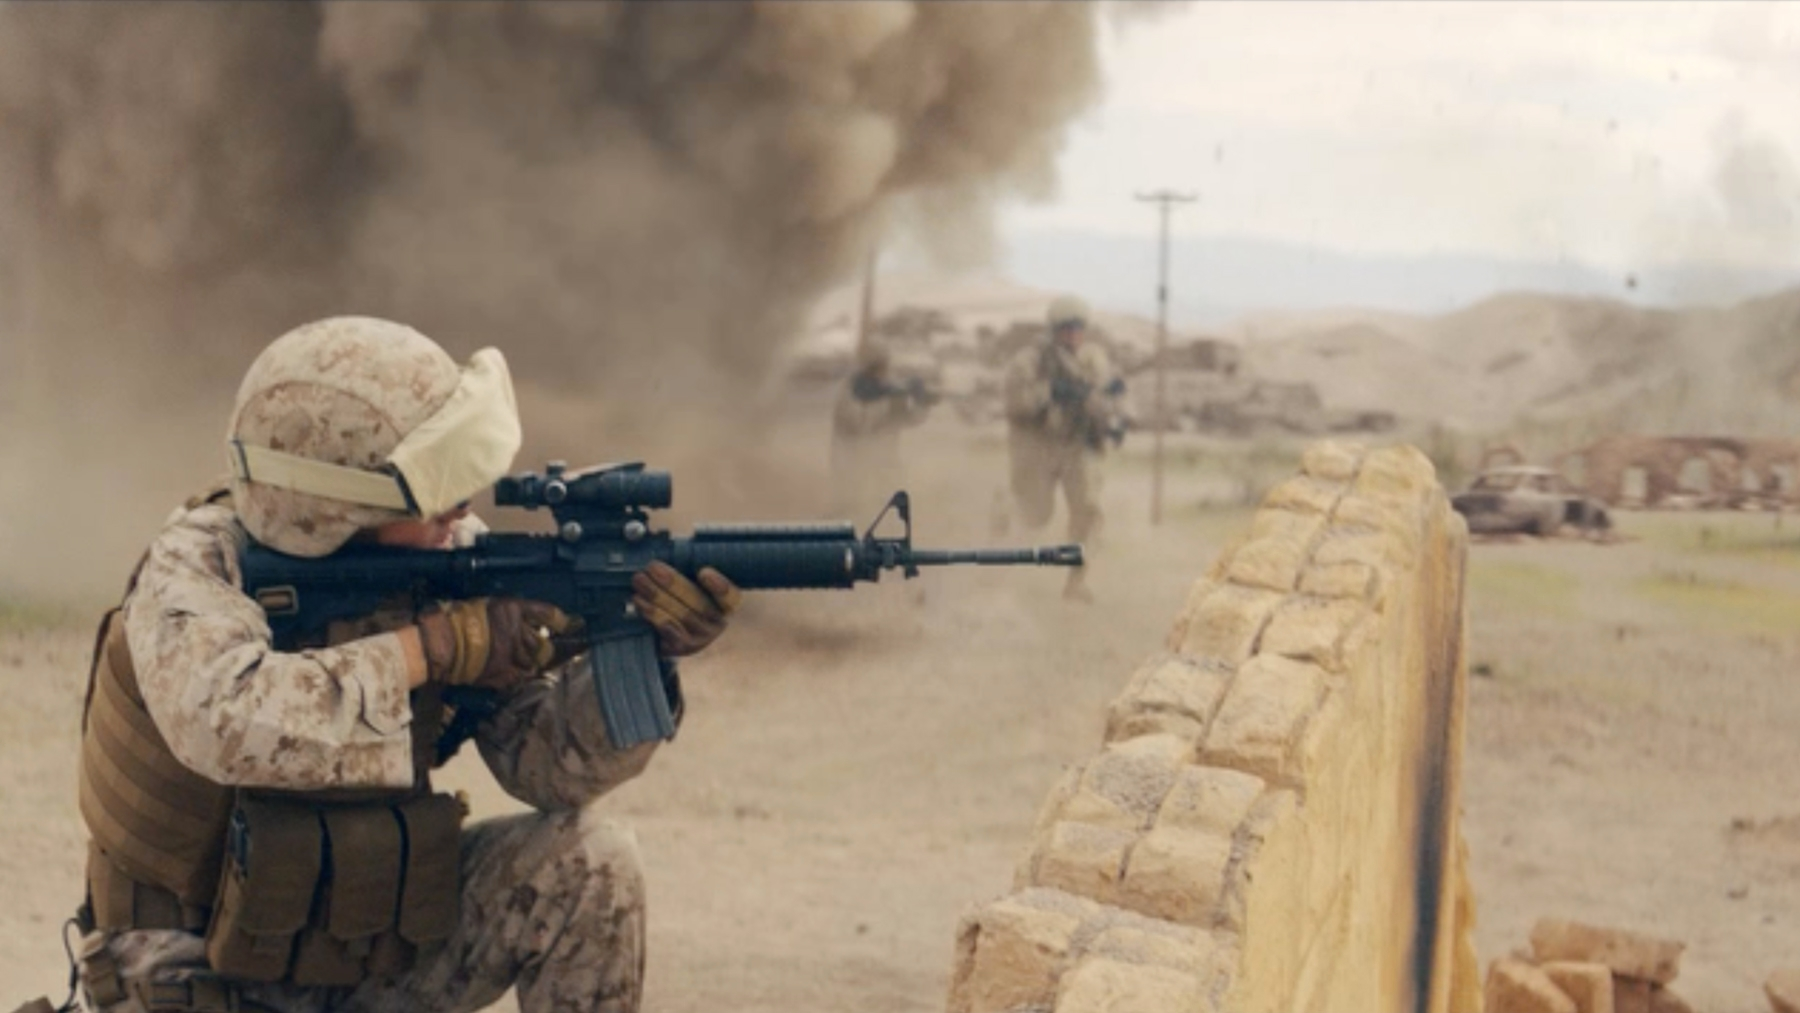 A new commercial from the United States Marines highlighting all of the battles Marines fight and win for our nation.